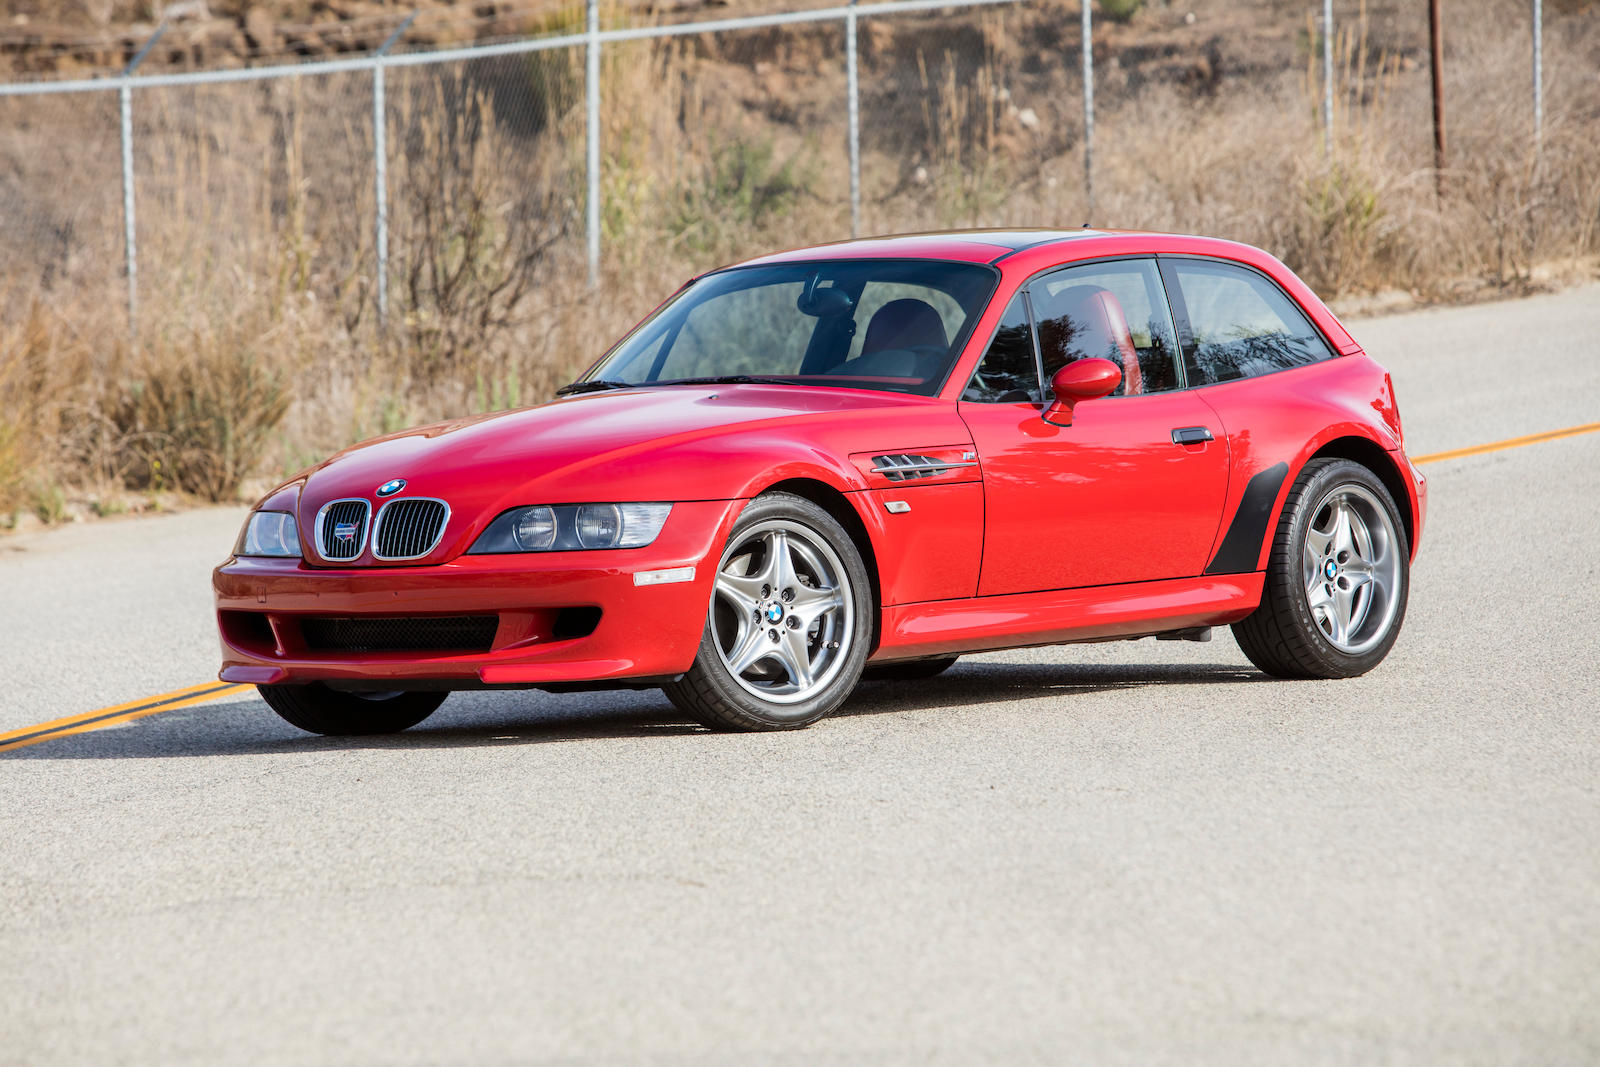 The Bmw M Coupe Stakes Its Claim As A Collector Car Not Just A Clown Shoe Hagerty Media